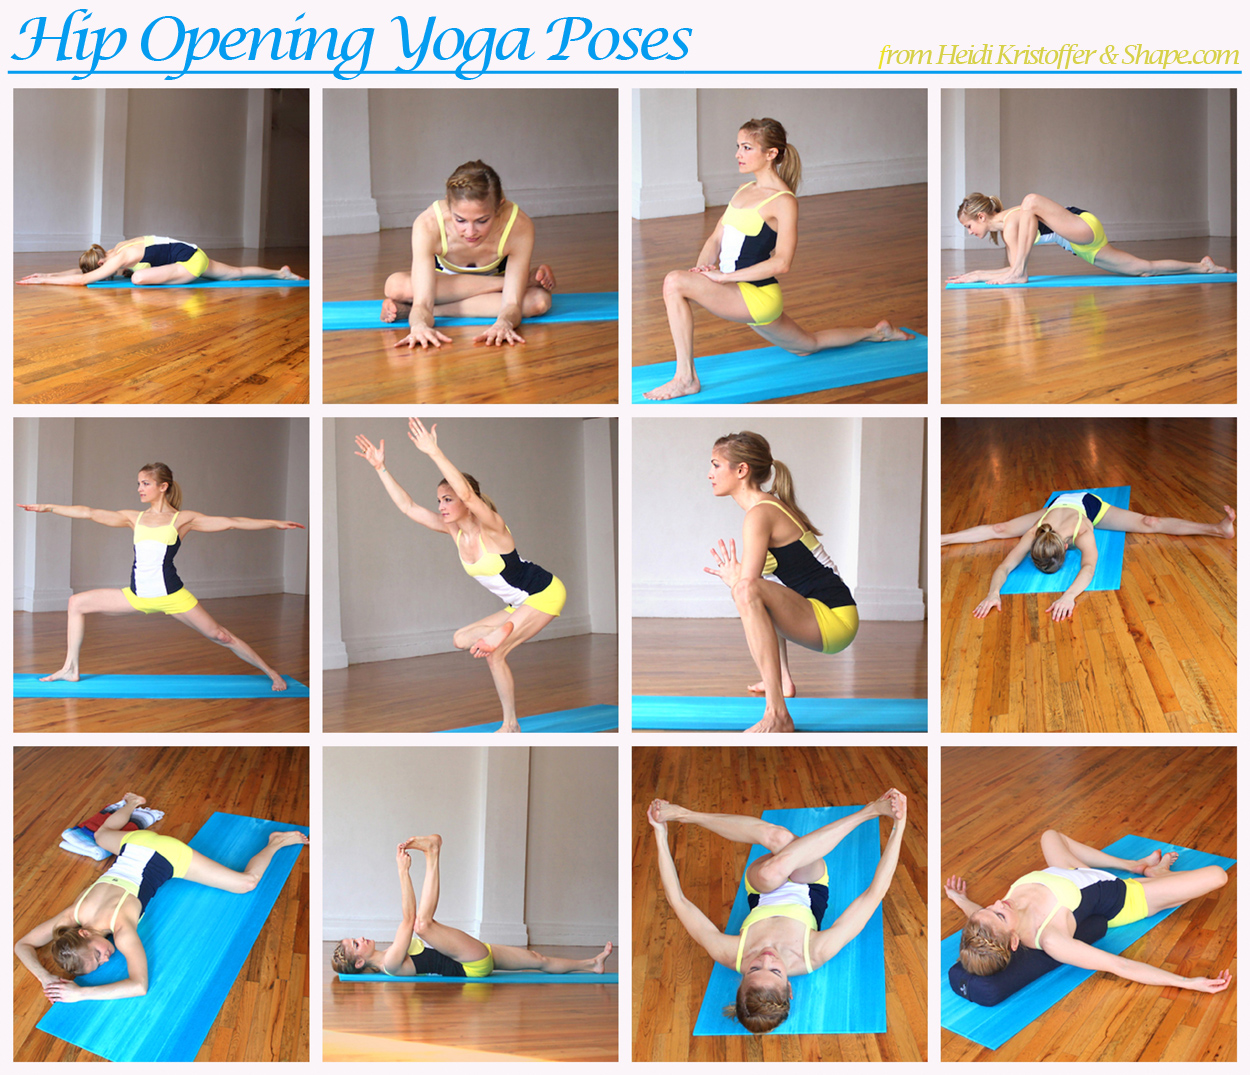 Yoga for Hip Opening - Healing Touch Charlotte